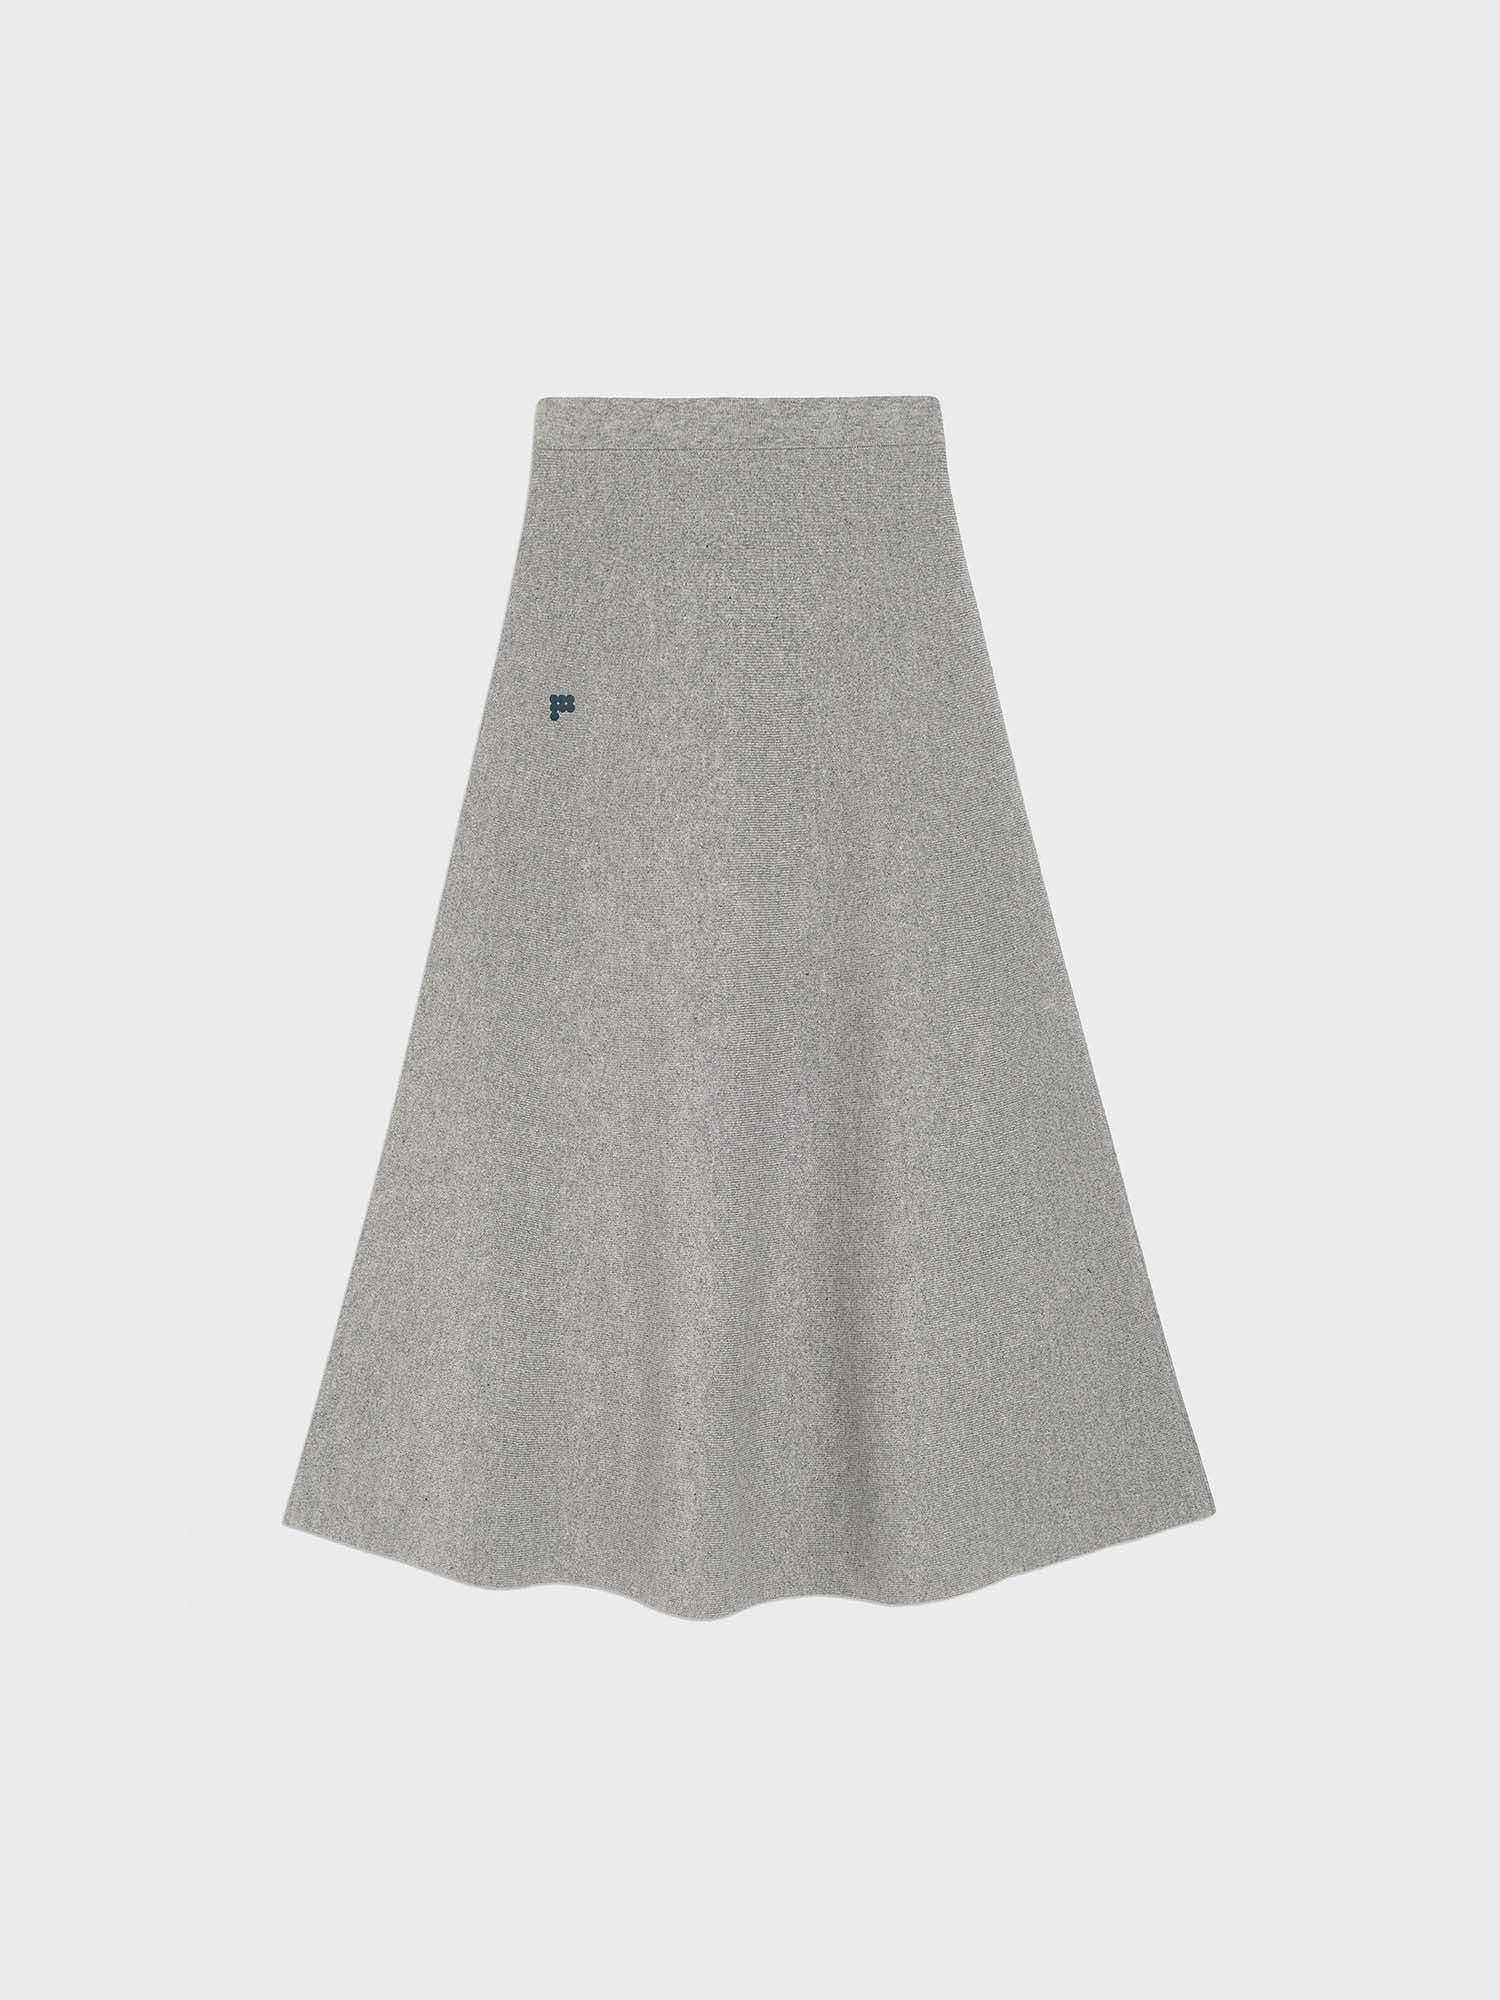 Women's Recycled Cashmere Skirt